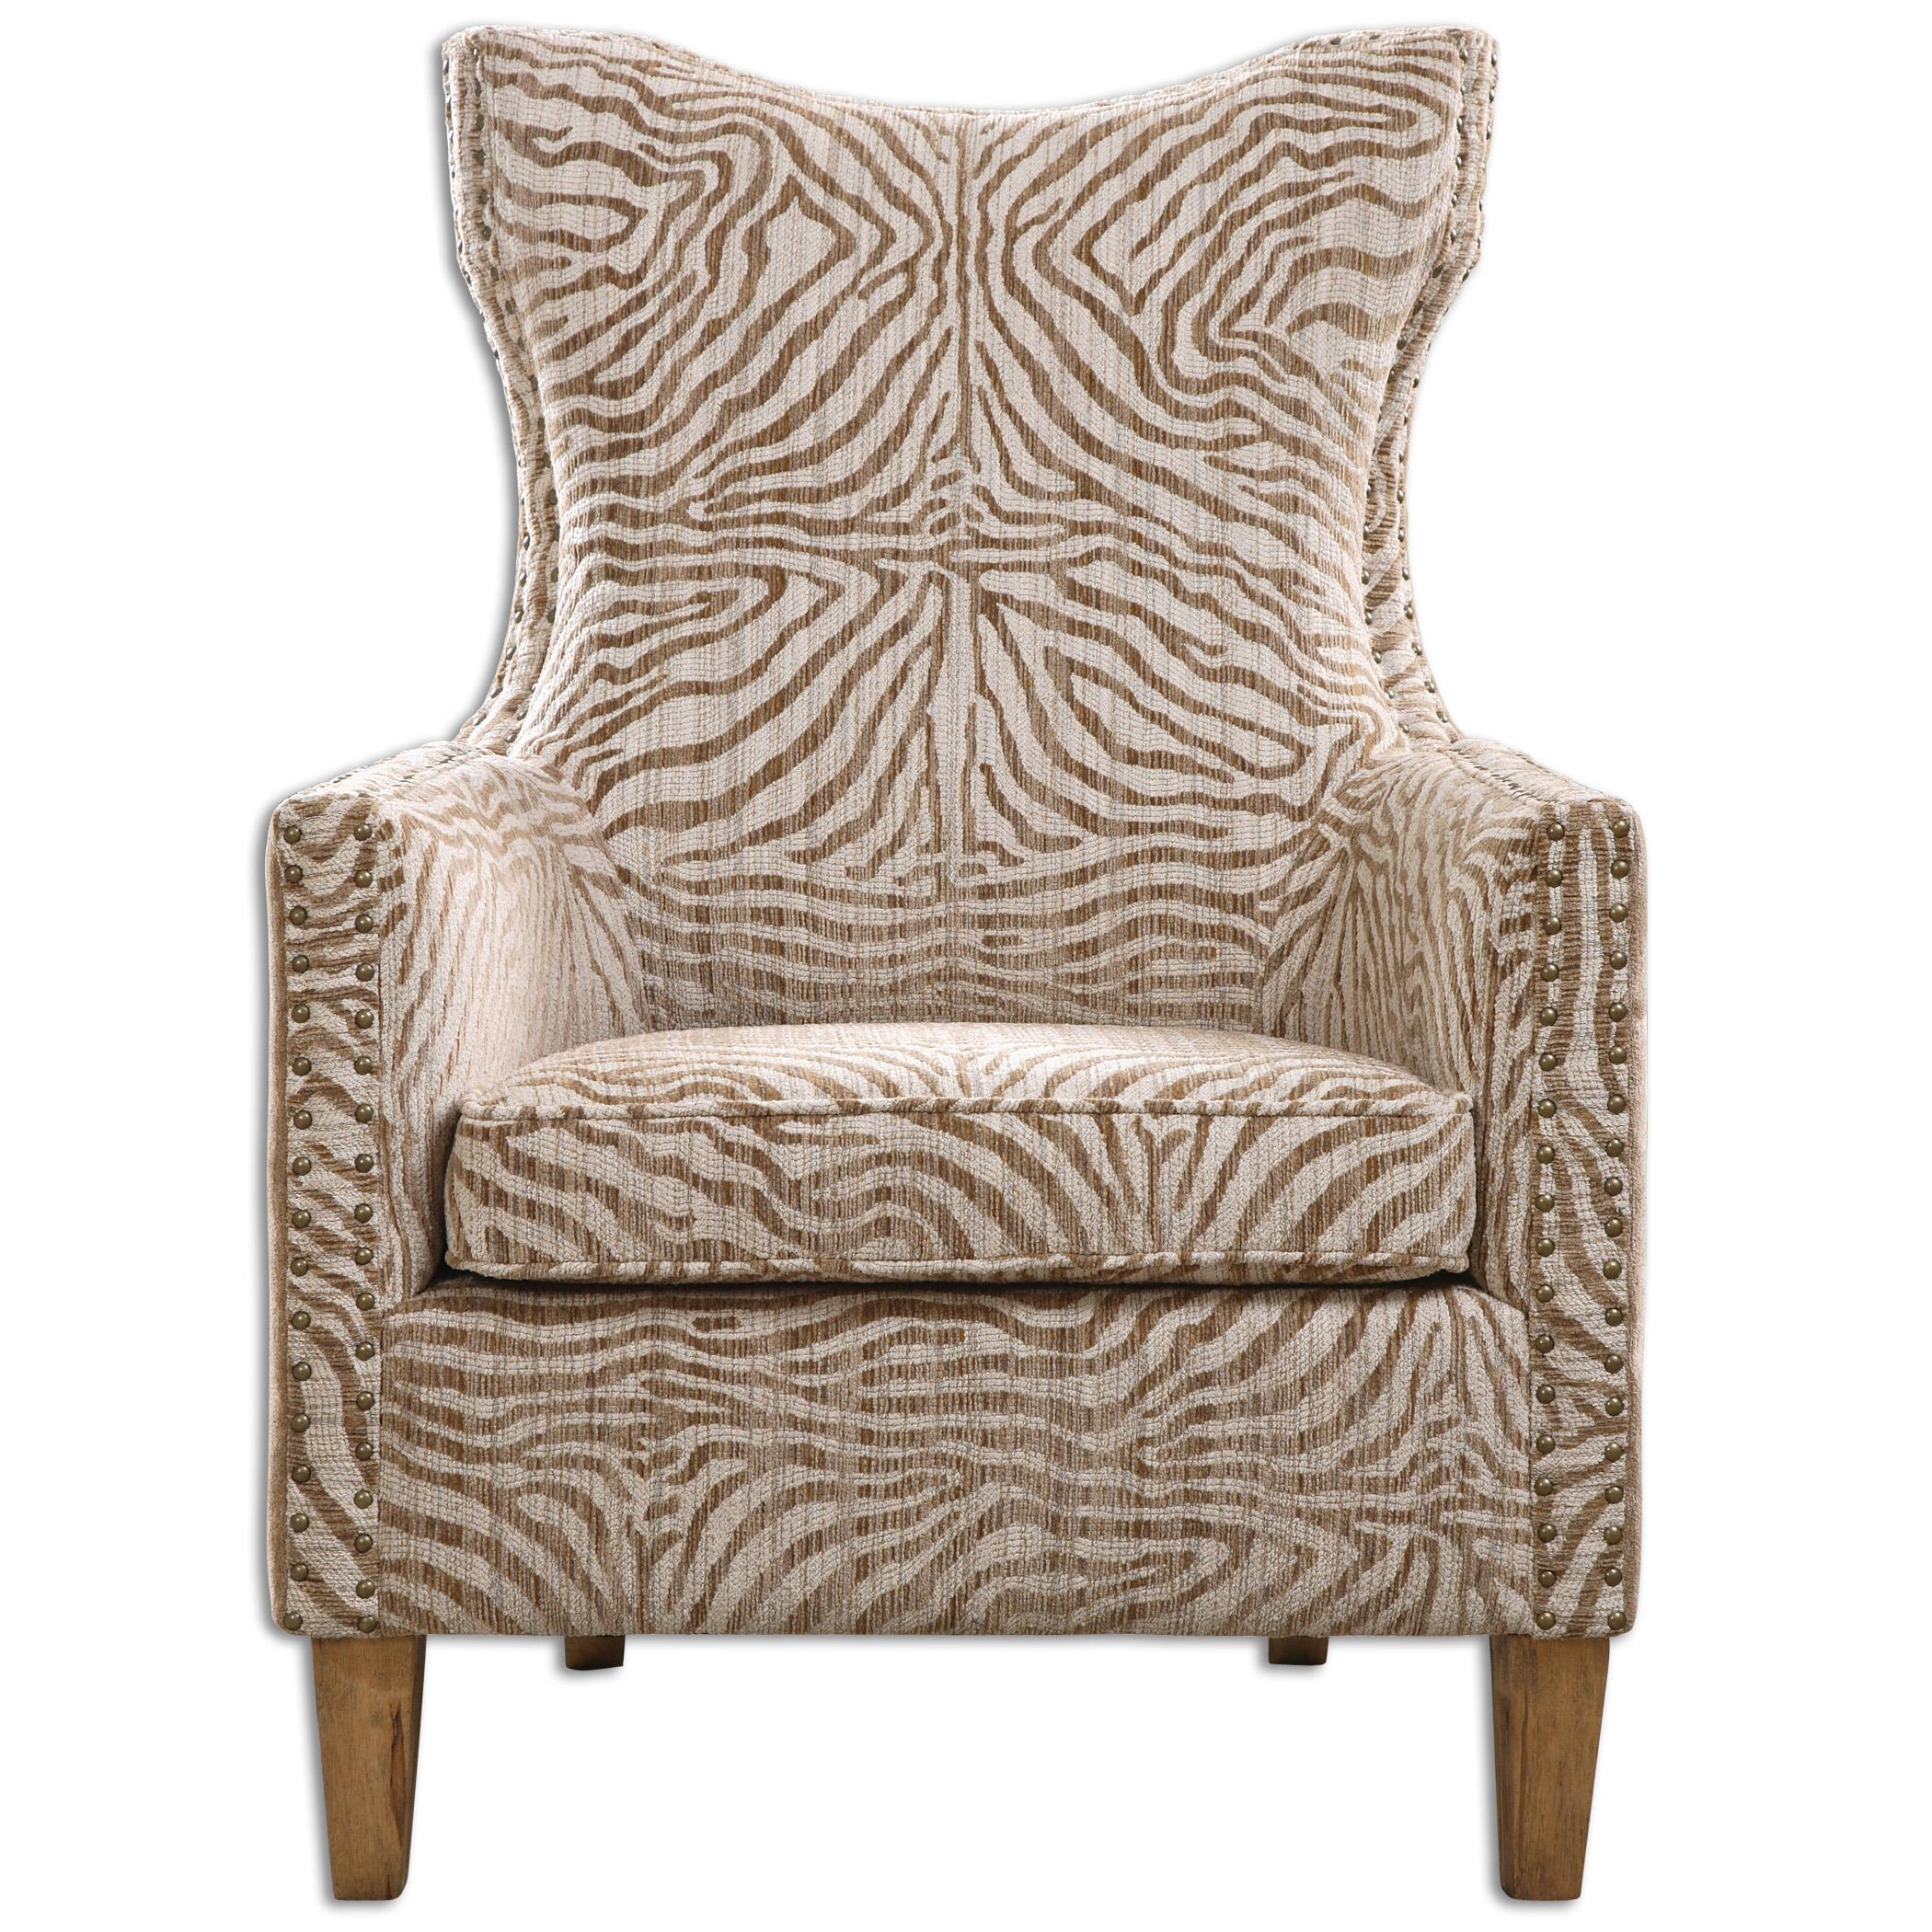 Accent Furniture - Accent Chairs Kiango Animal Pattern Armchair by Uttermost at Upper Room Home Furnishings